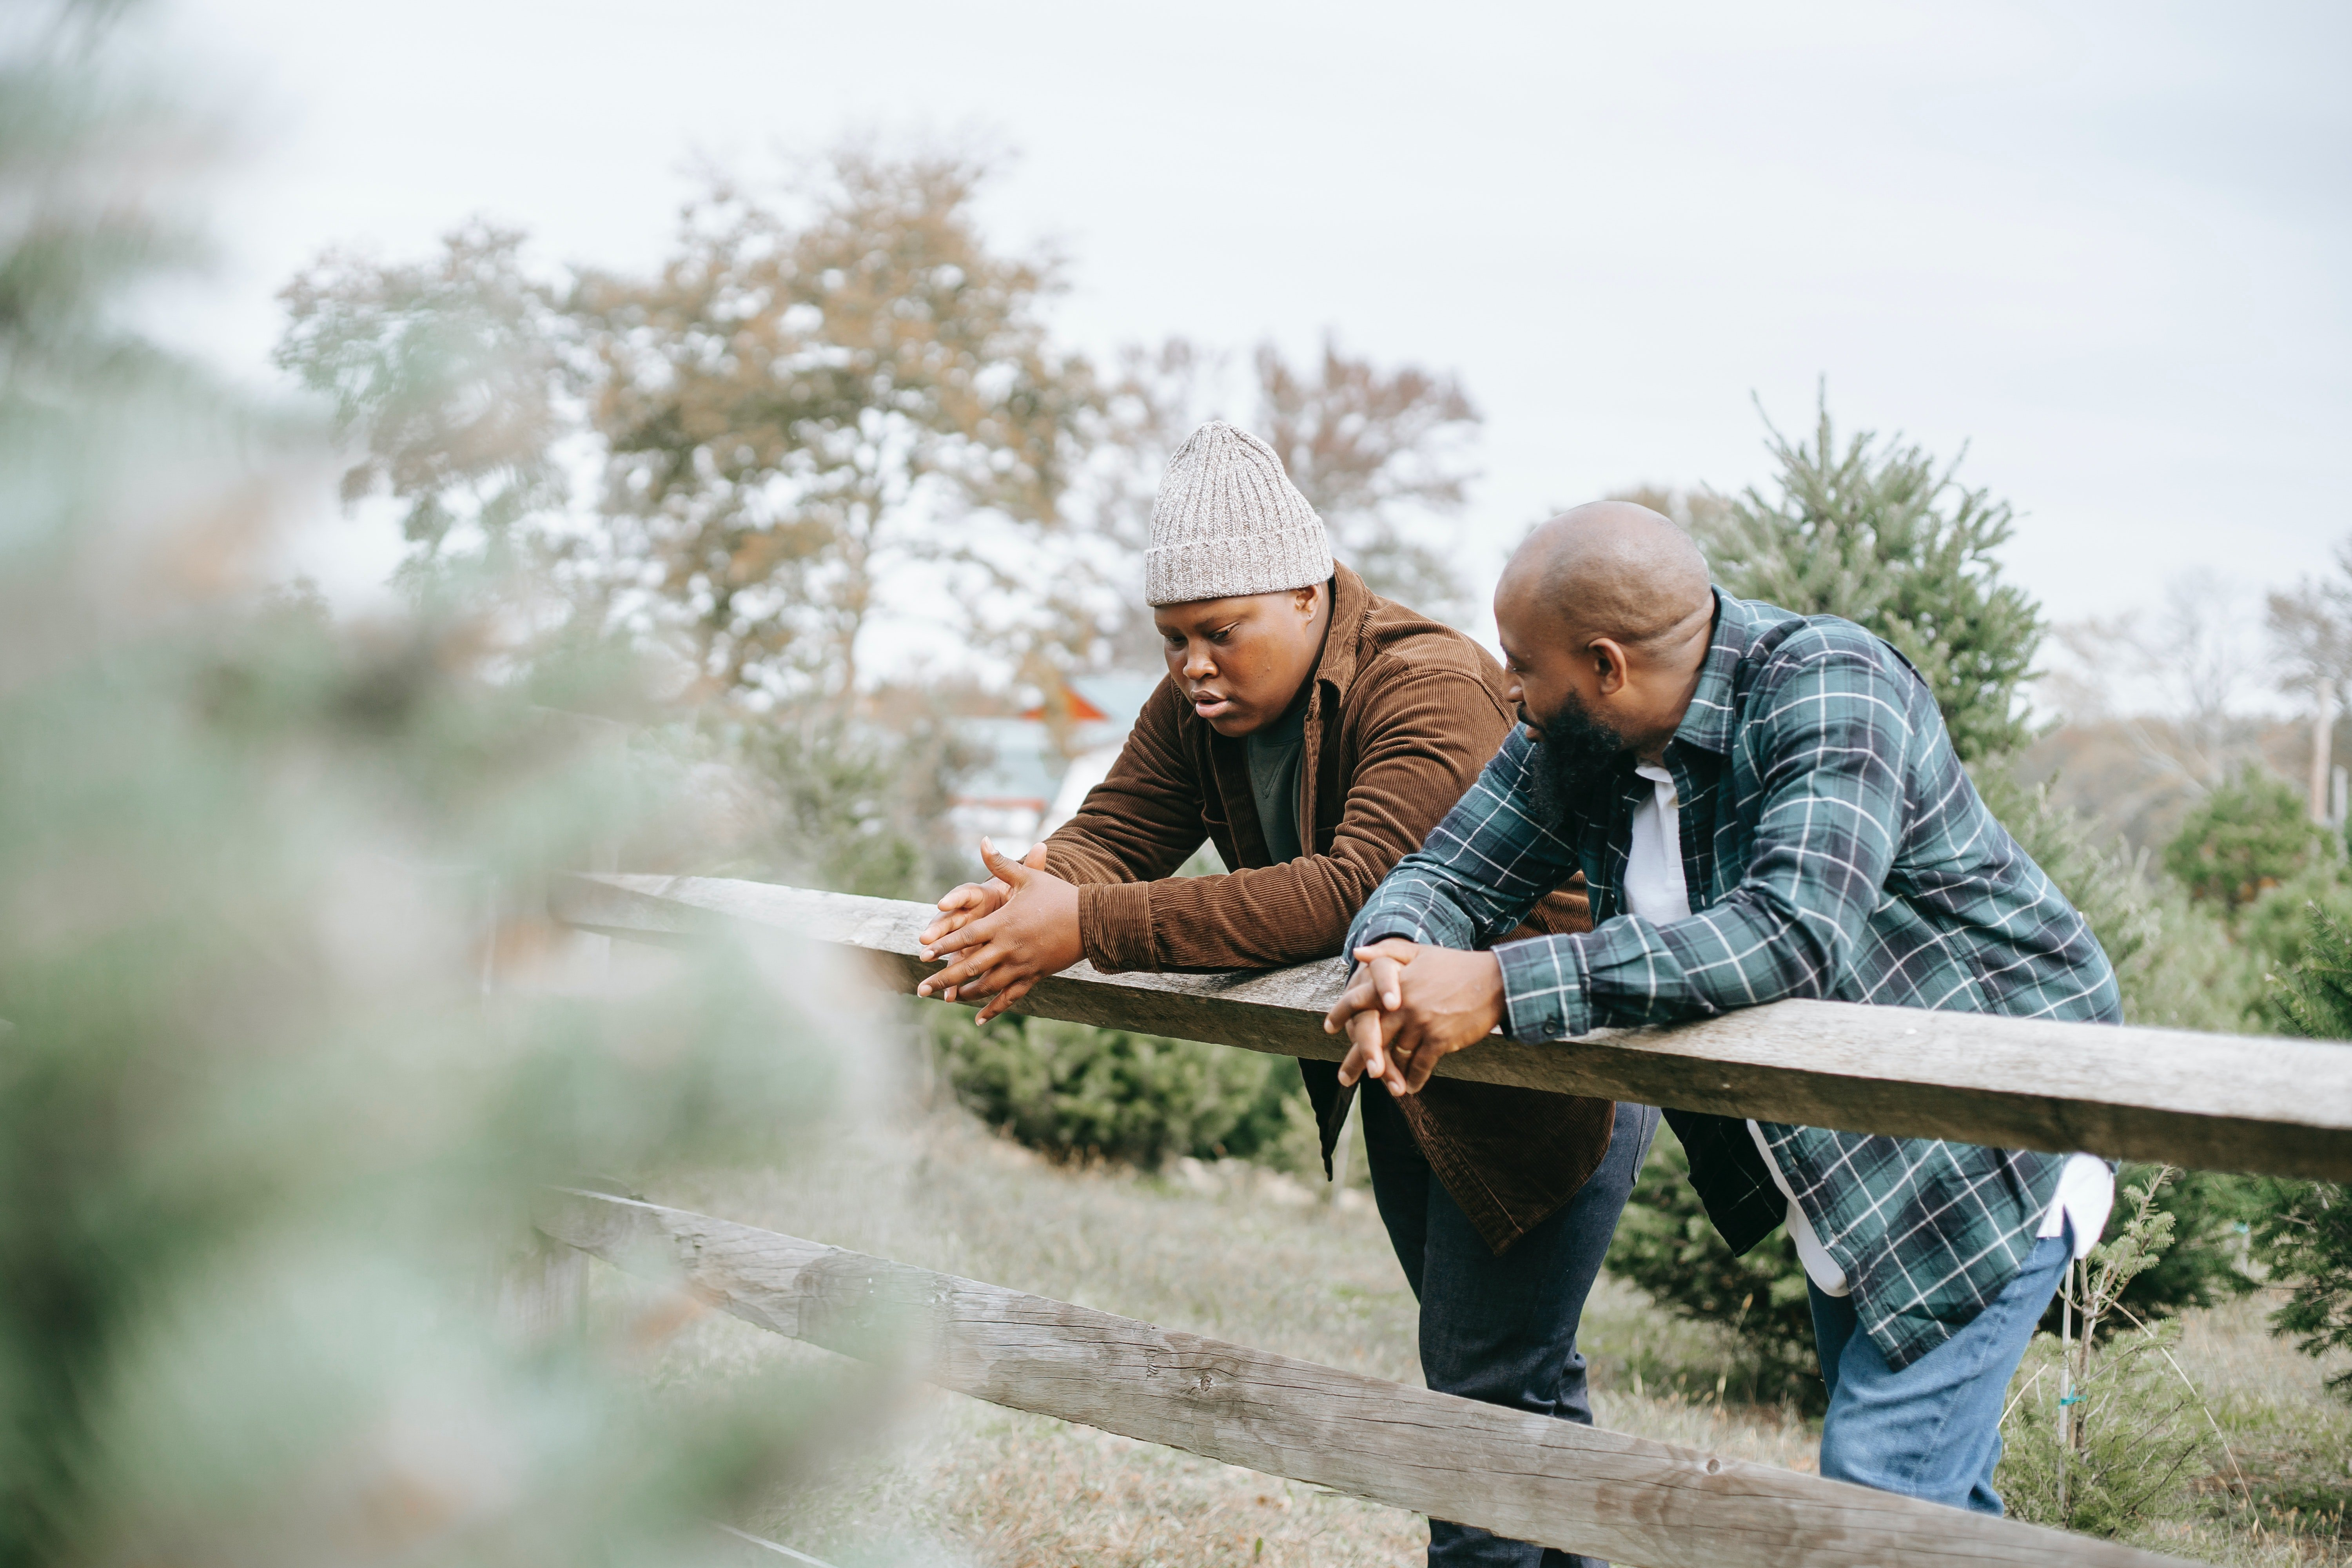 Black father conversing with teen near fence on farmland   Photo: Pexels